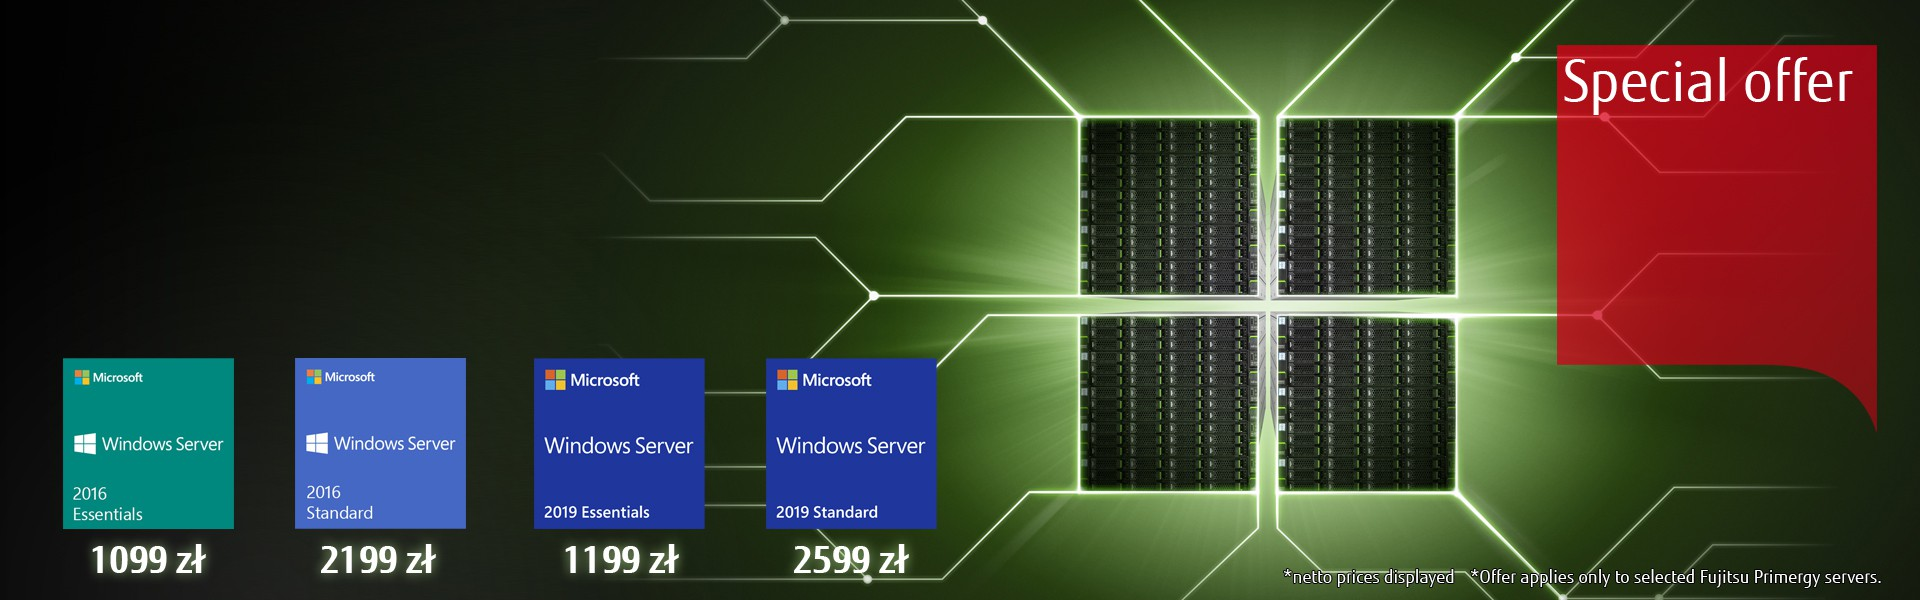 Windows Server 2016&2019